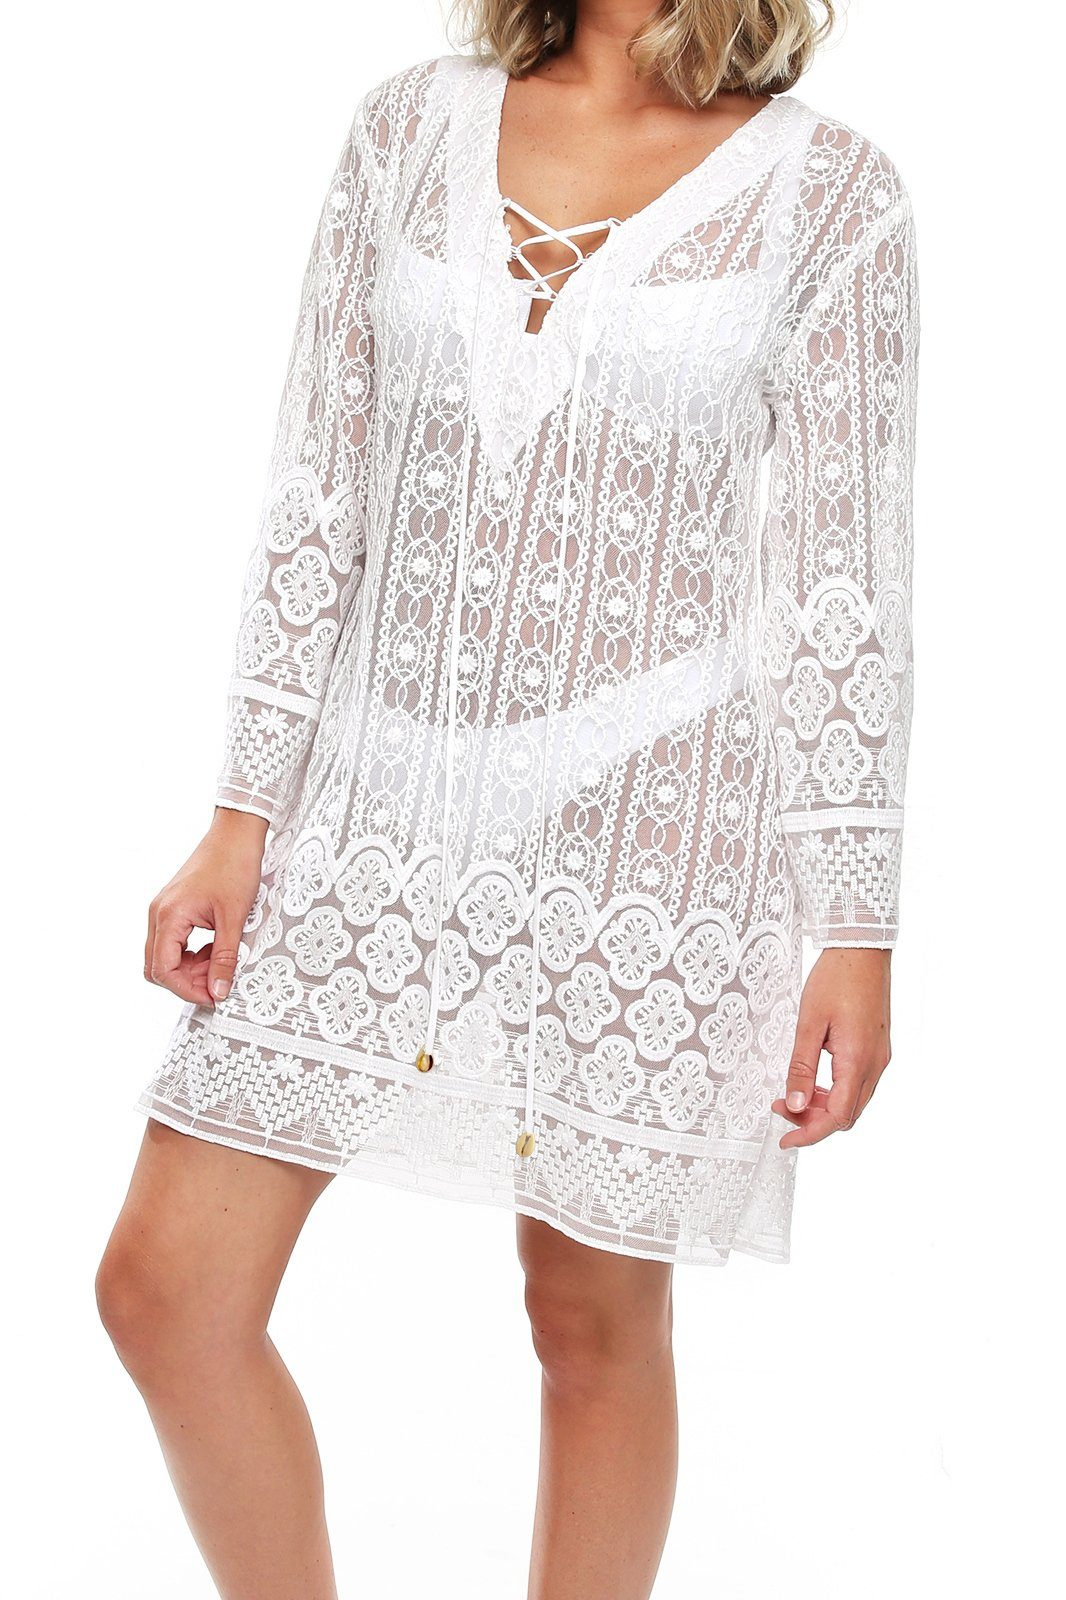 Milan Mini Dress - White Lace - Shore